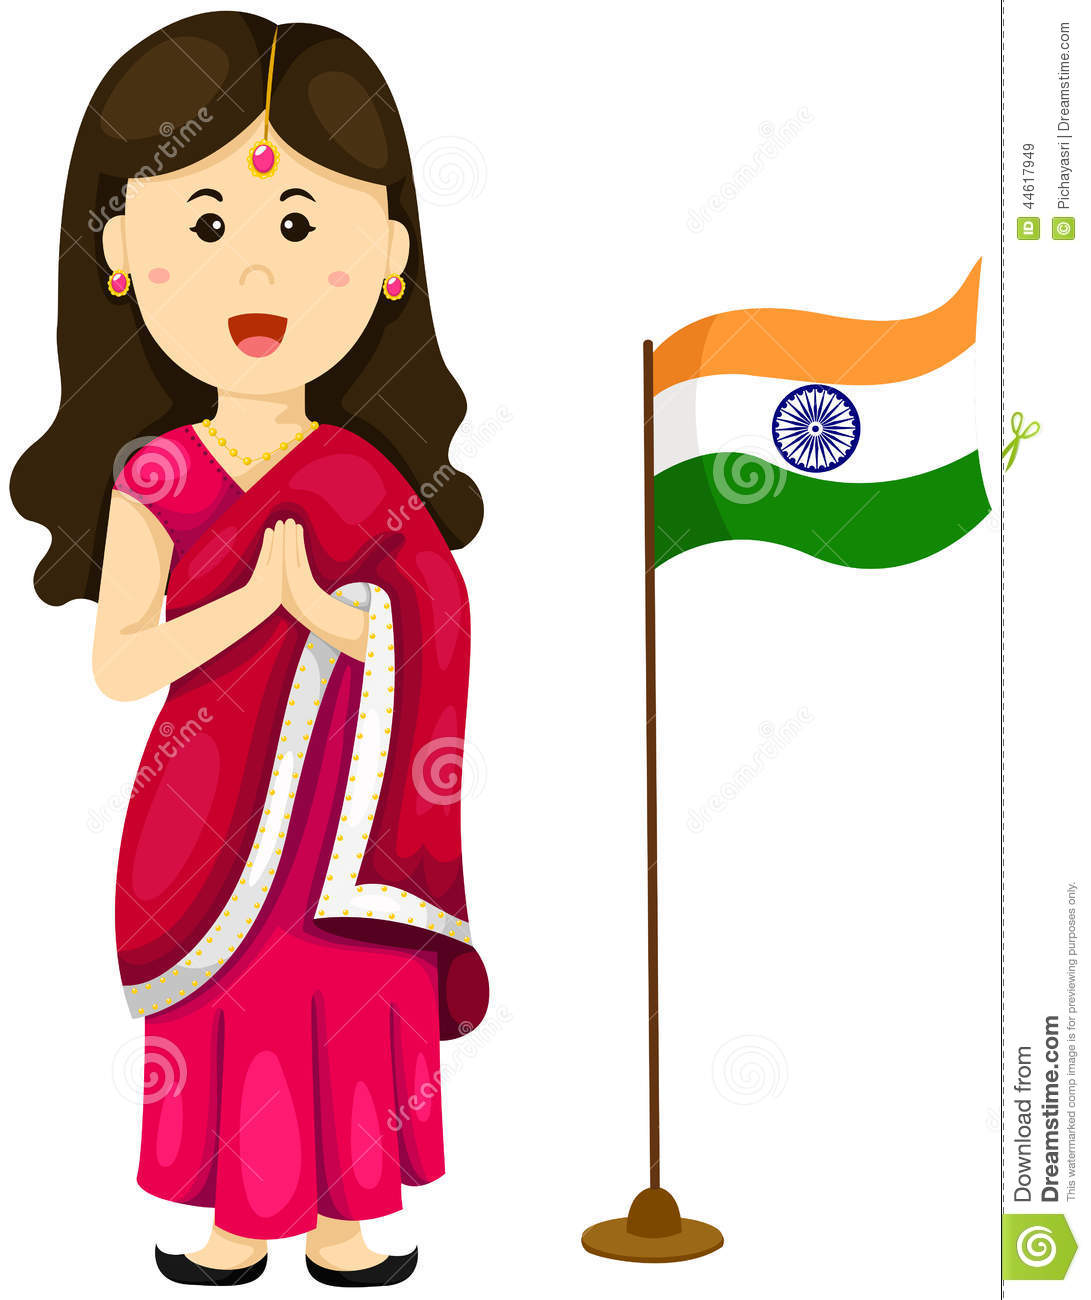 Indian traditional dress clipart png freeuse stock Cute Indian Girl In Traditional Dress Stock Vector - Image: 44617949 png freeuse stock